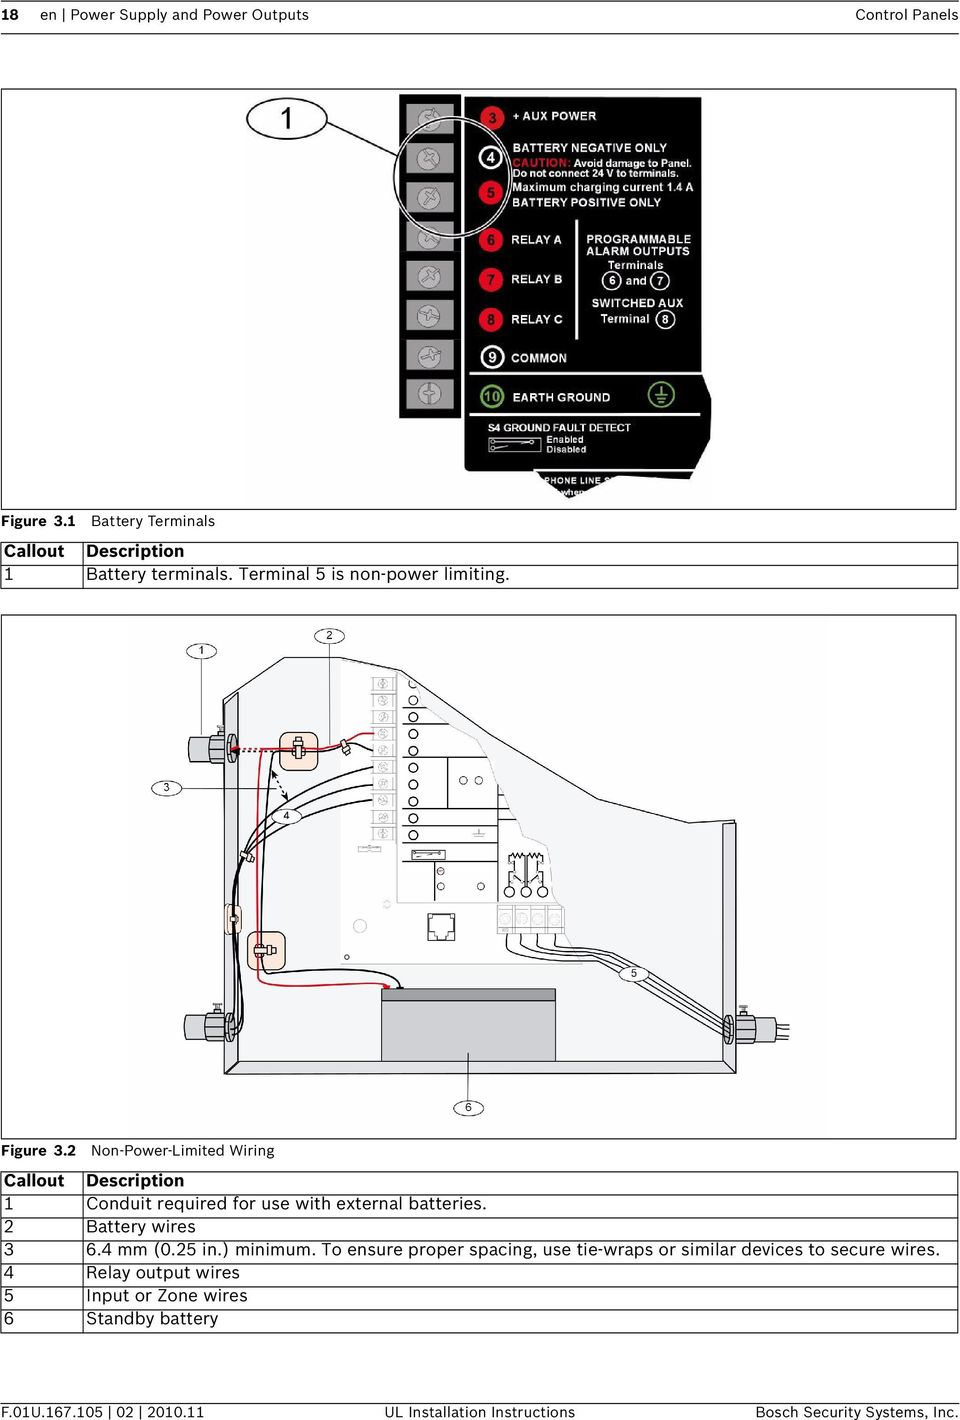 Control Panels D9412gv3 D7412gv3 D7212gv3 Ul Installation Battery Wiring Diagram V3 2 Non Power Limited Callout Description 1 Conduit Required For Use With External